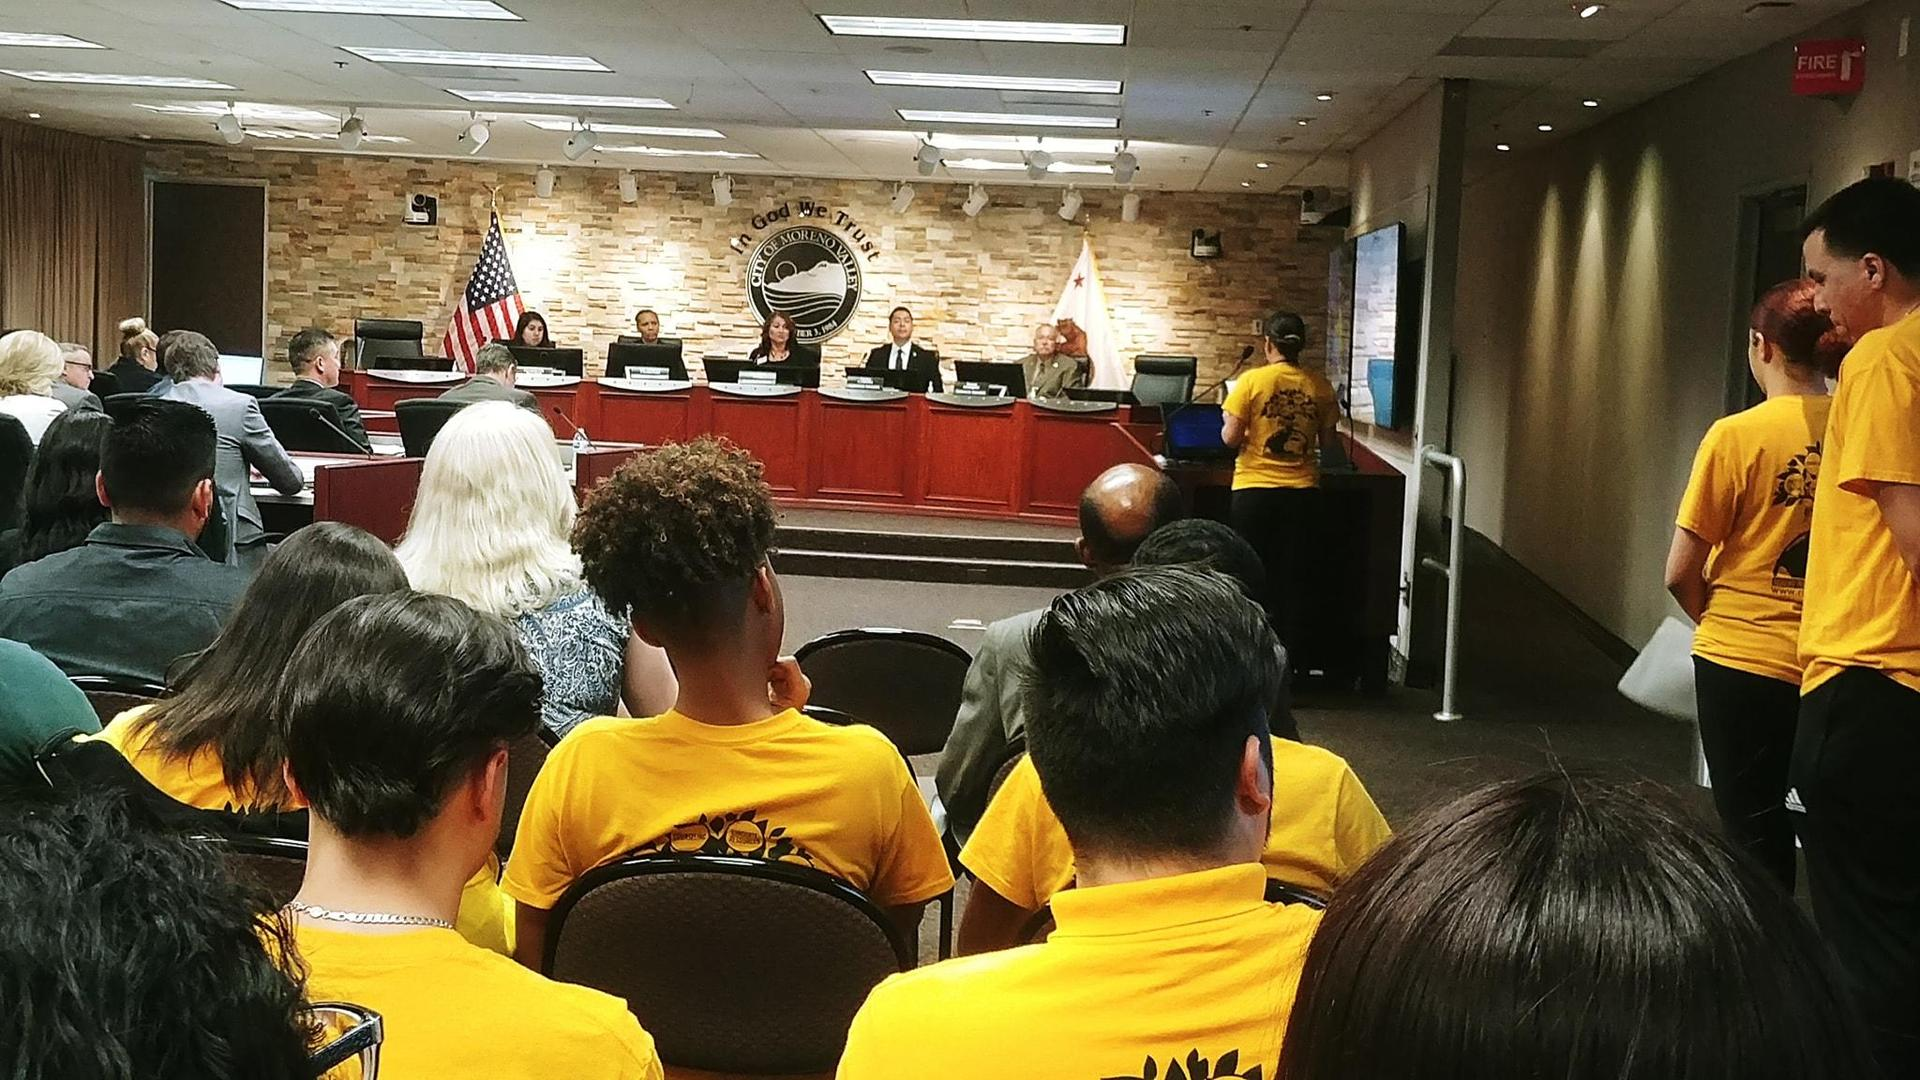 Moreno Valley students present at a city council meeting